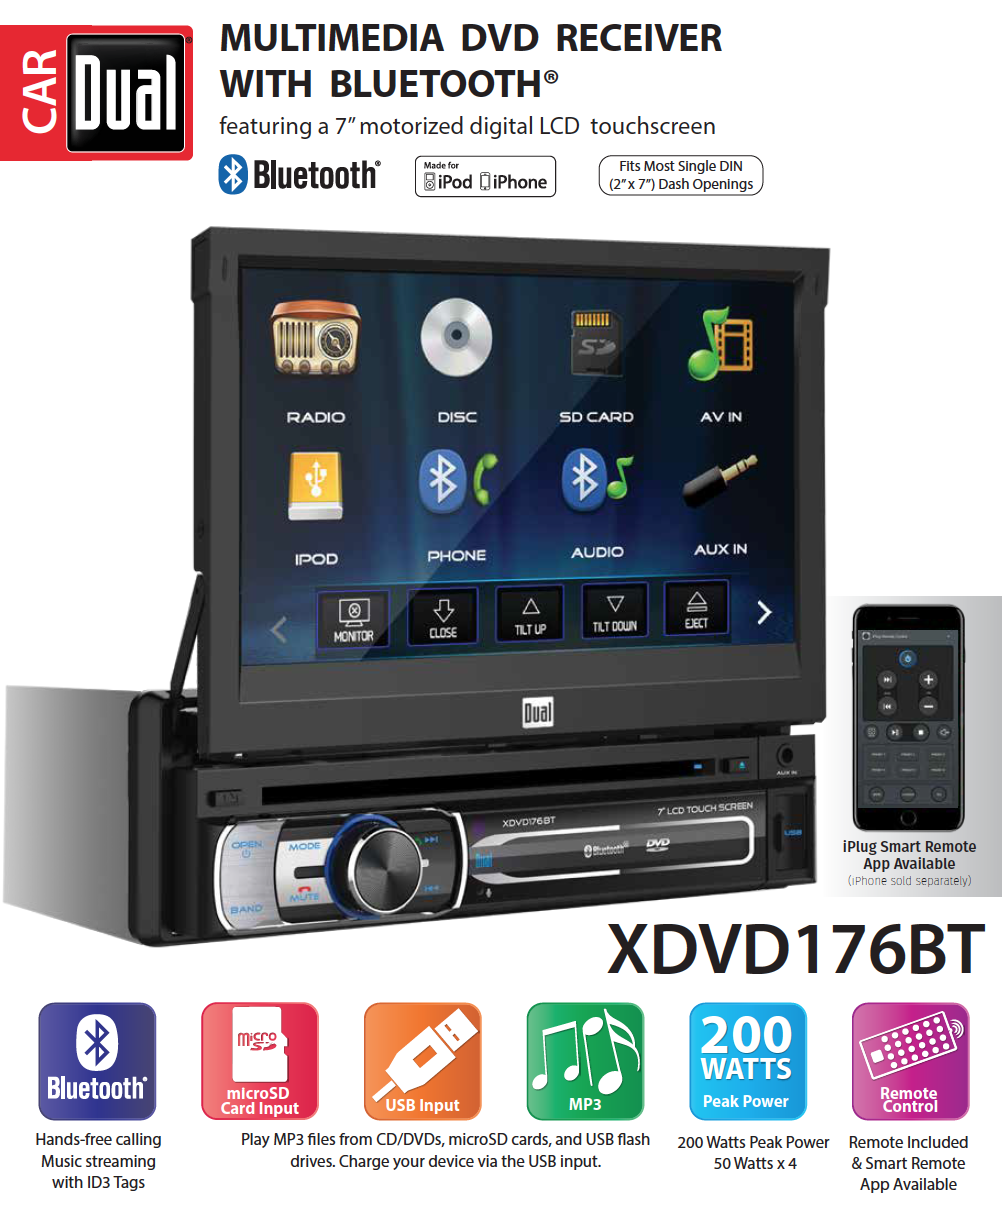 dual electronics xdvd176bt 7 inch led backlit lcd multimediadual electronics xdvd176bt 7 inch led backlit lcd multimedia retractable \u0026 detachable touch screen single